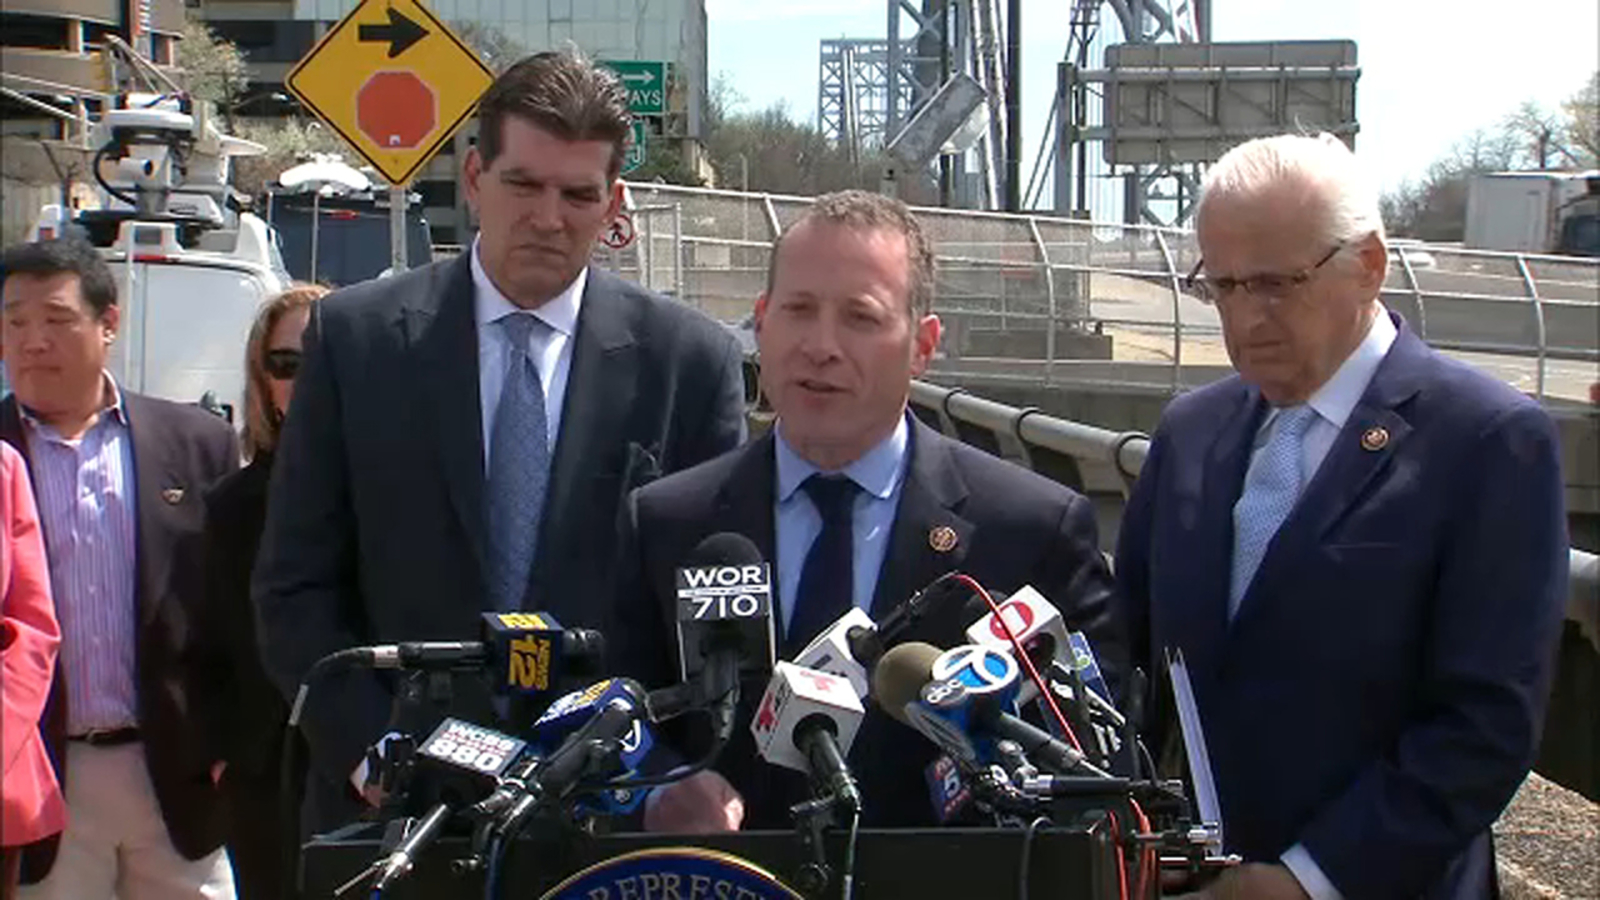 New Jersey congressmen slam New York City congestion pricing plan